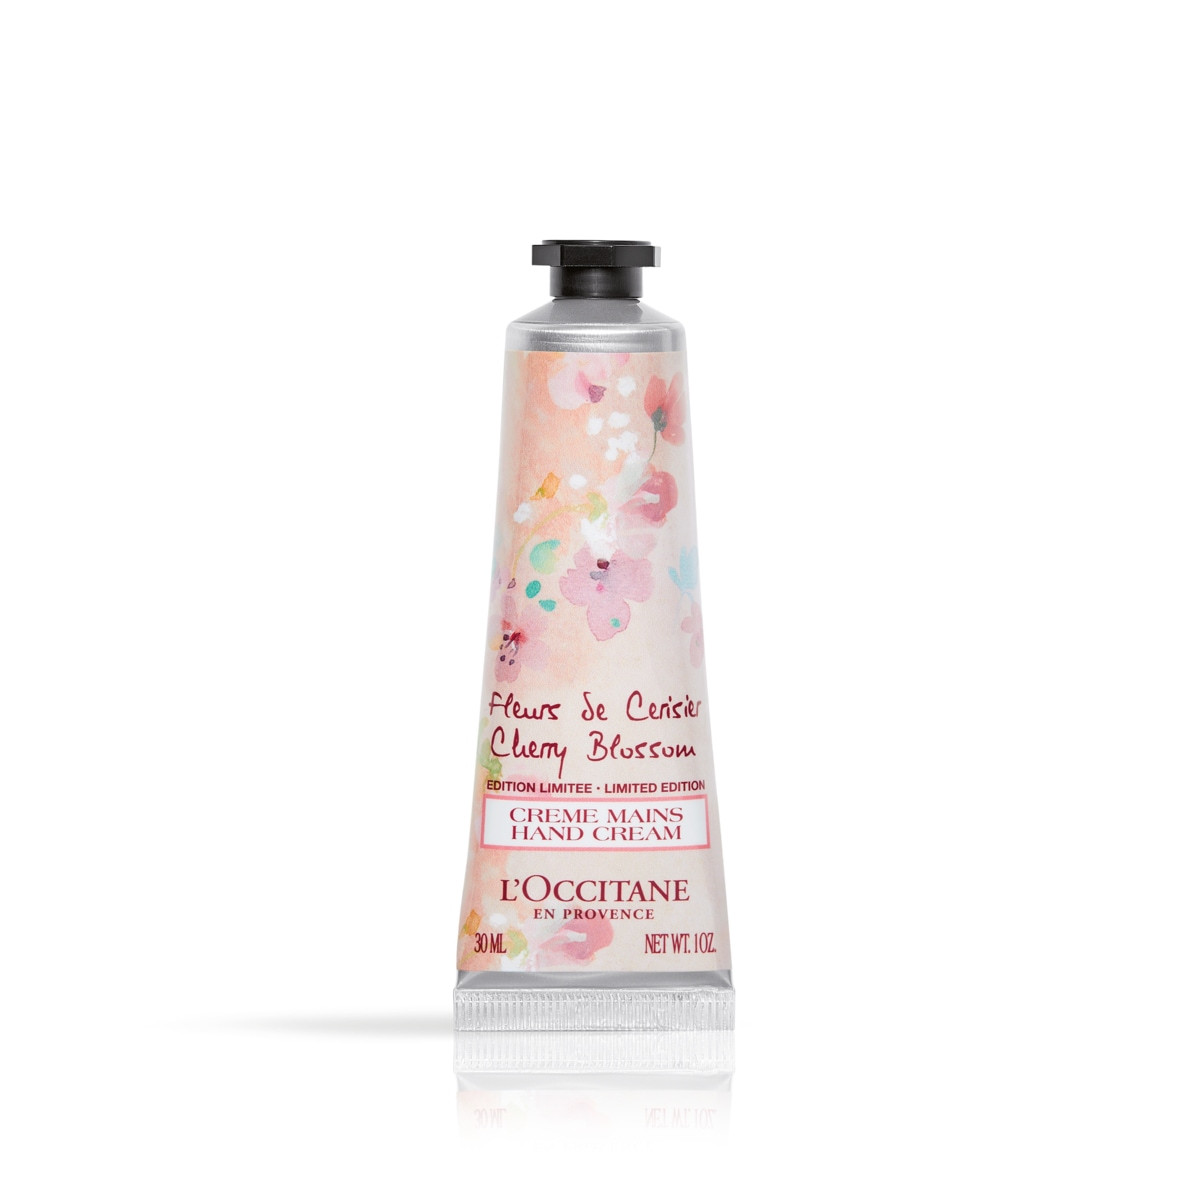 Limited Edition - Cherry Blossom Hand Cream